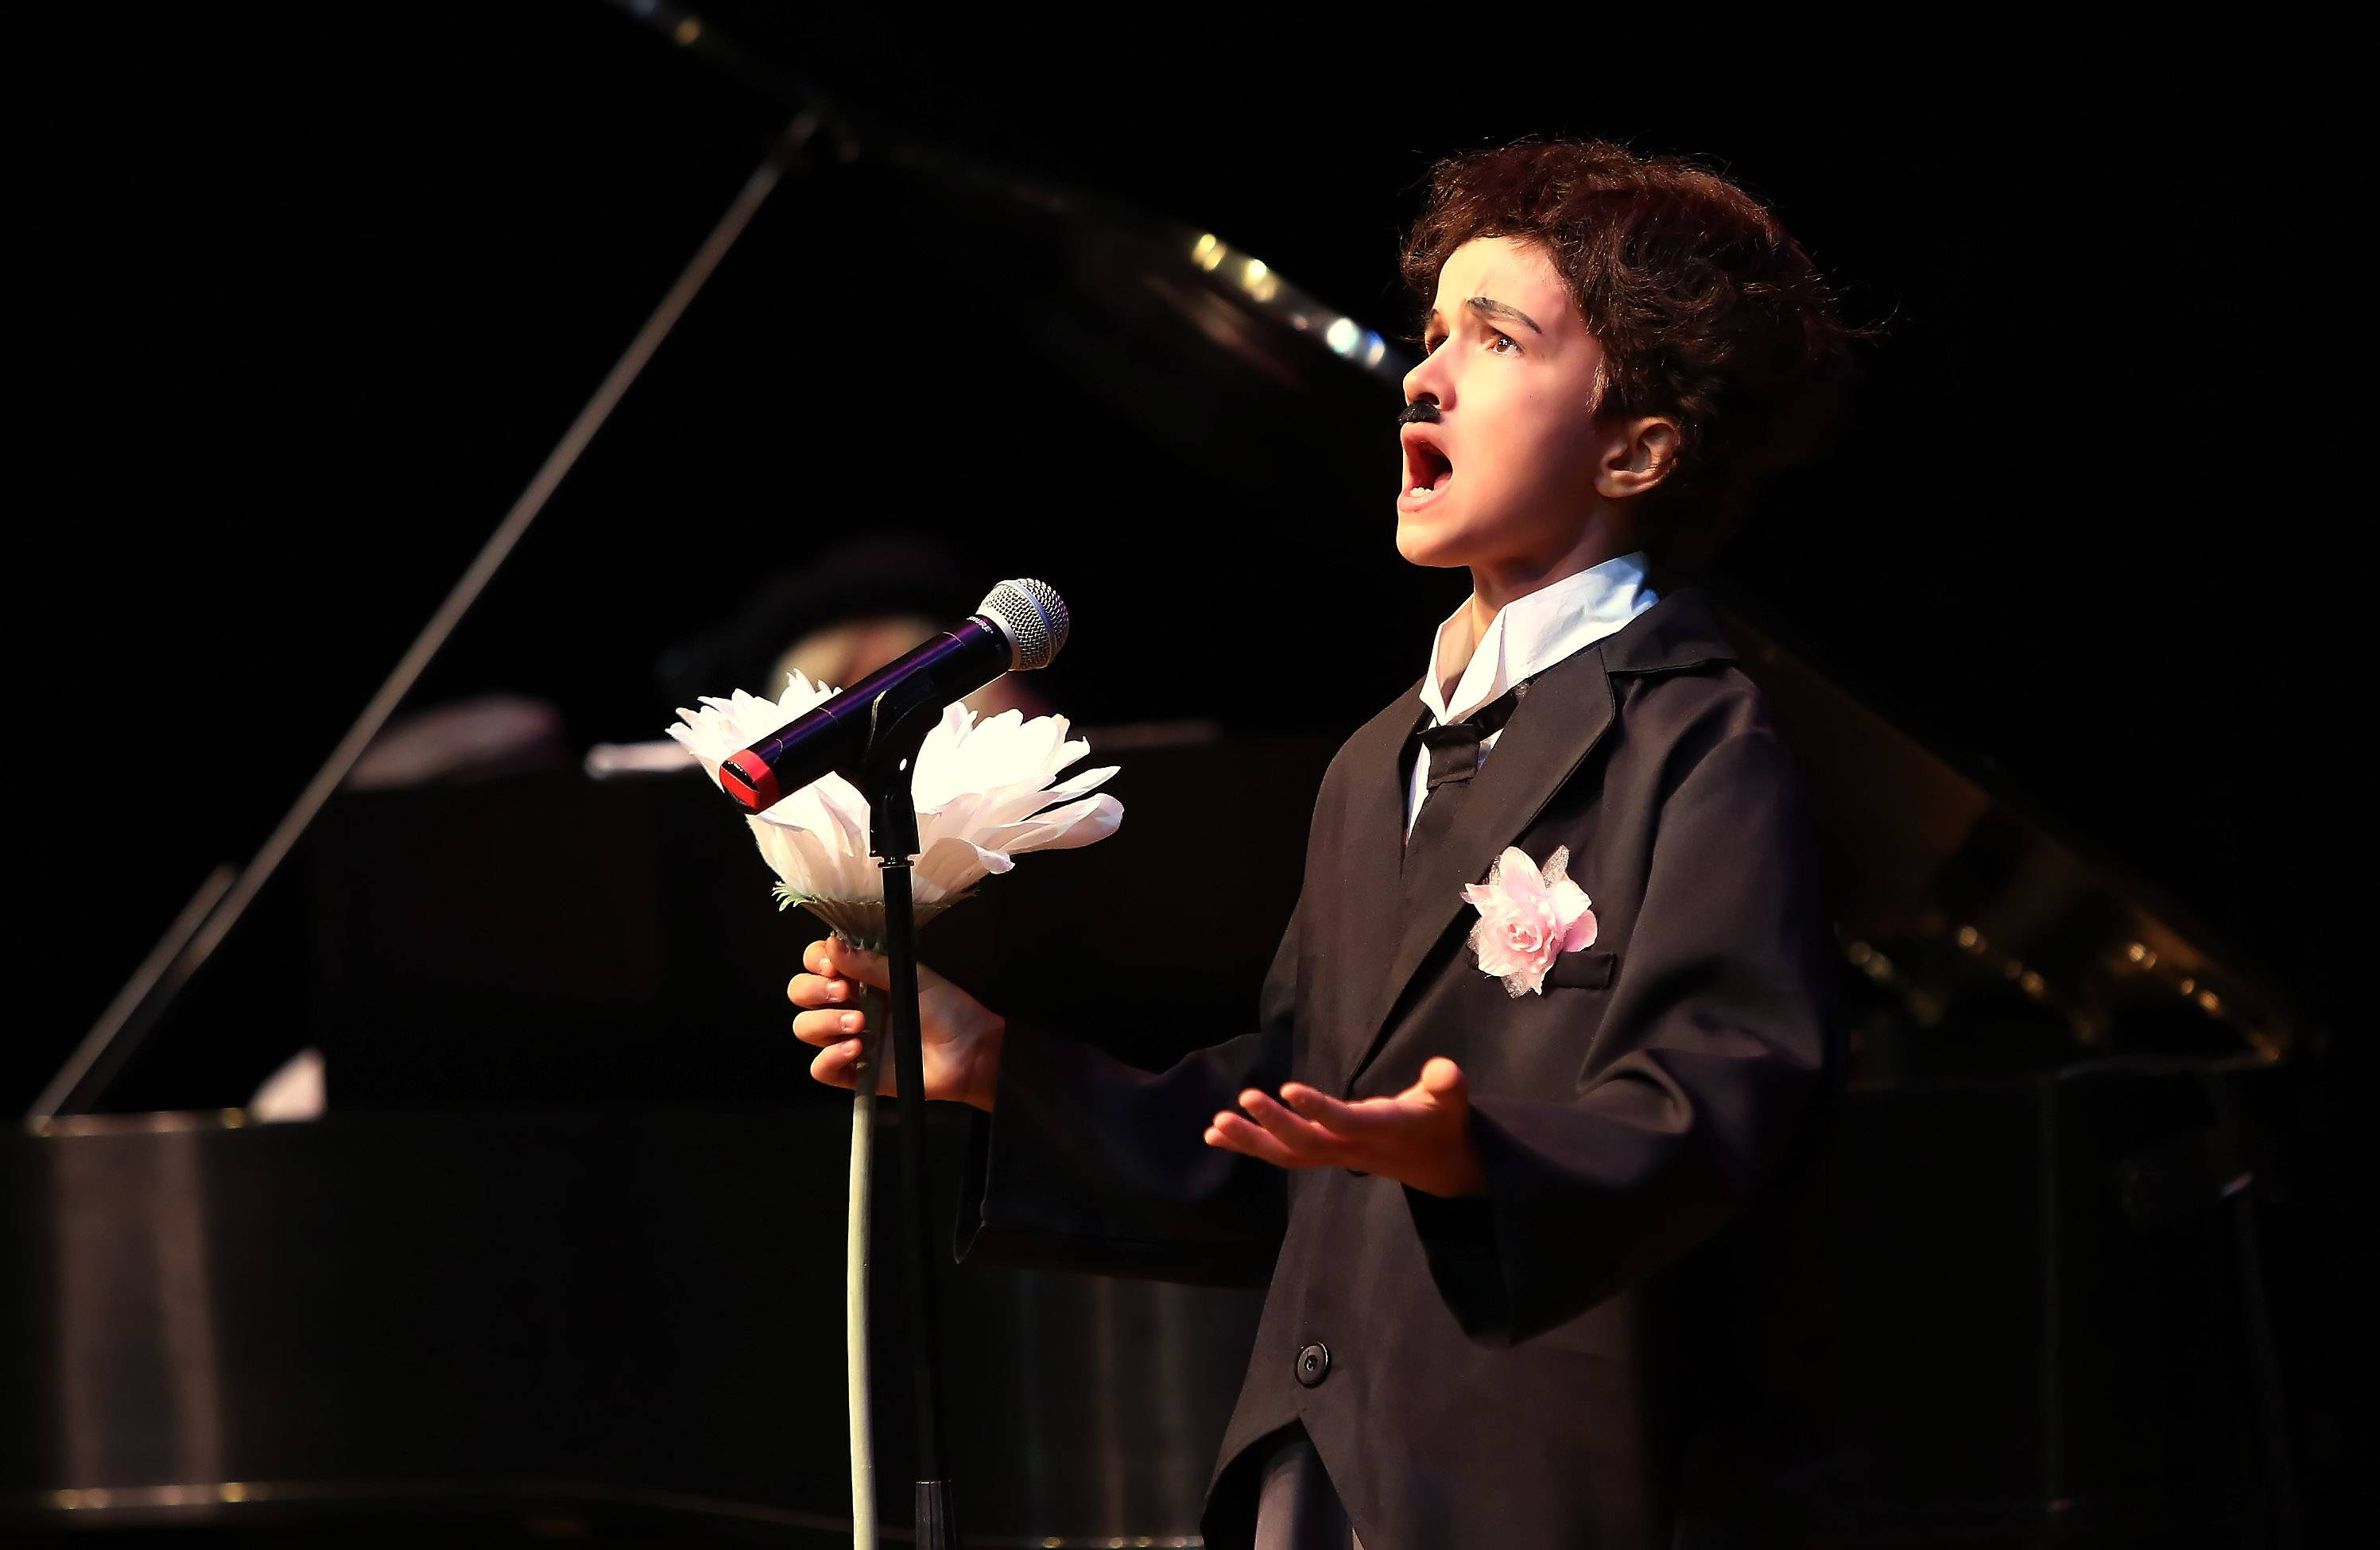 Sheridan Archbold of Yorkville sings during the Suburban Chicago's Got Talent competition Sunday night at the Metropolis Performing Arts Centre in Arlington Heights.